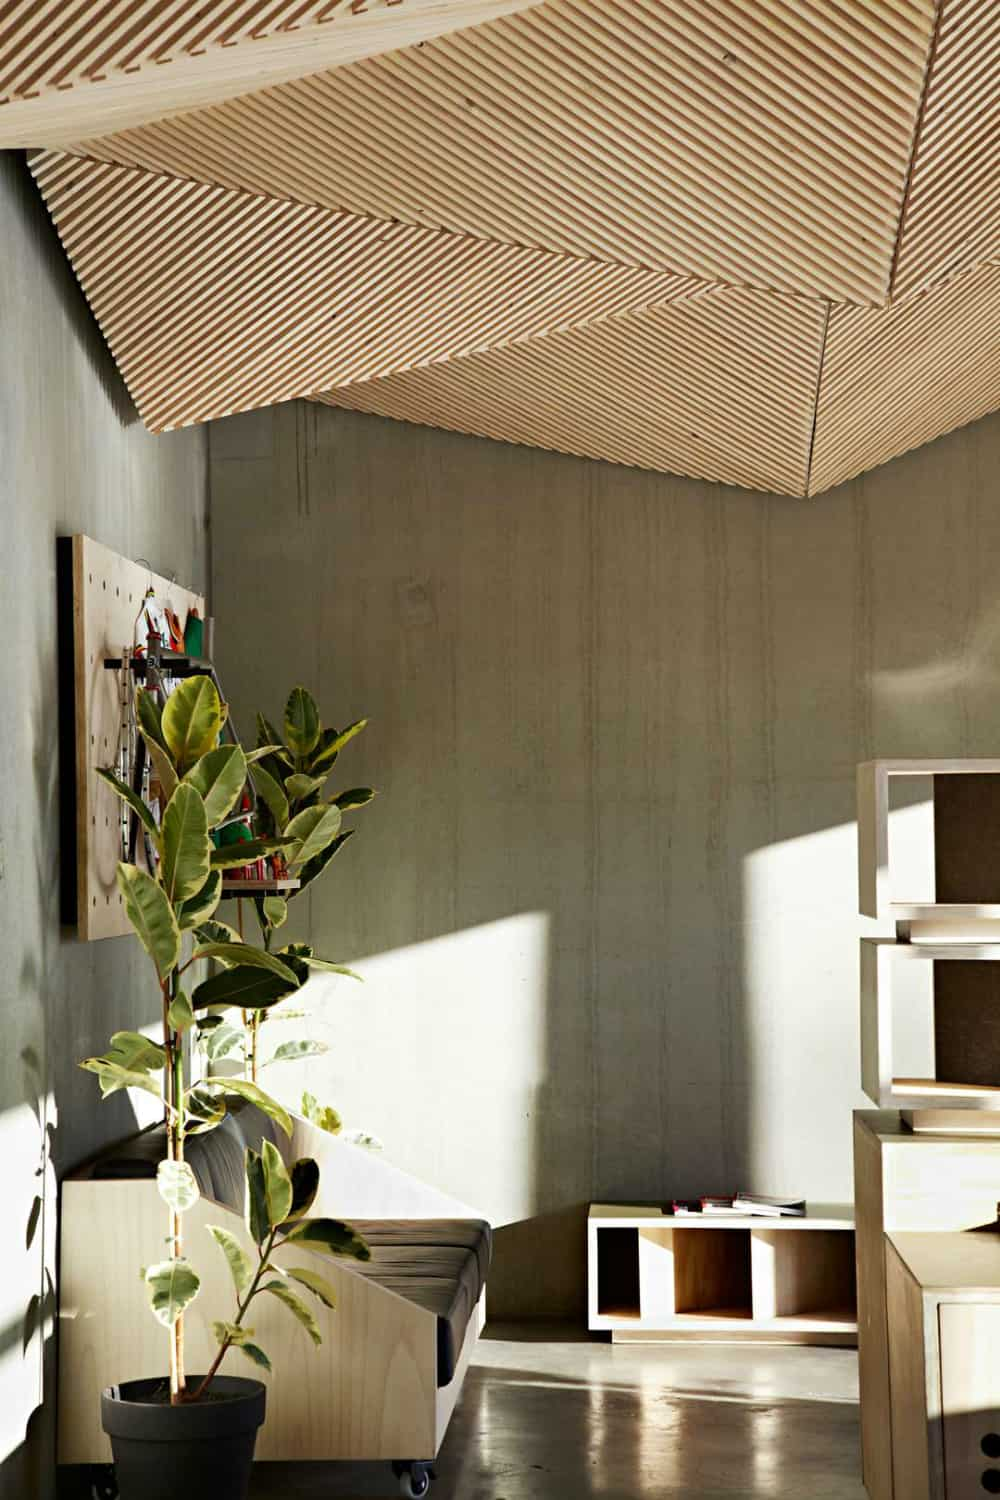 Geometric ceiling by Assemble